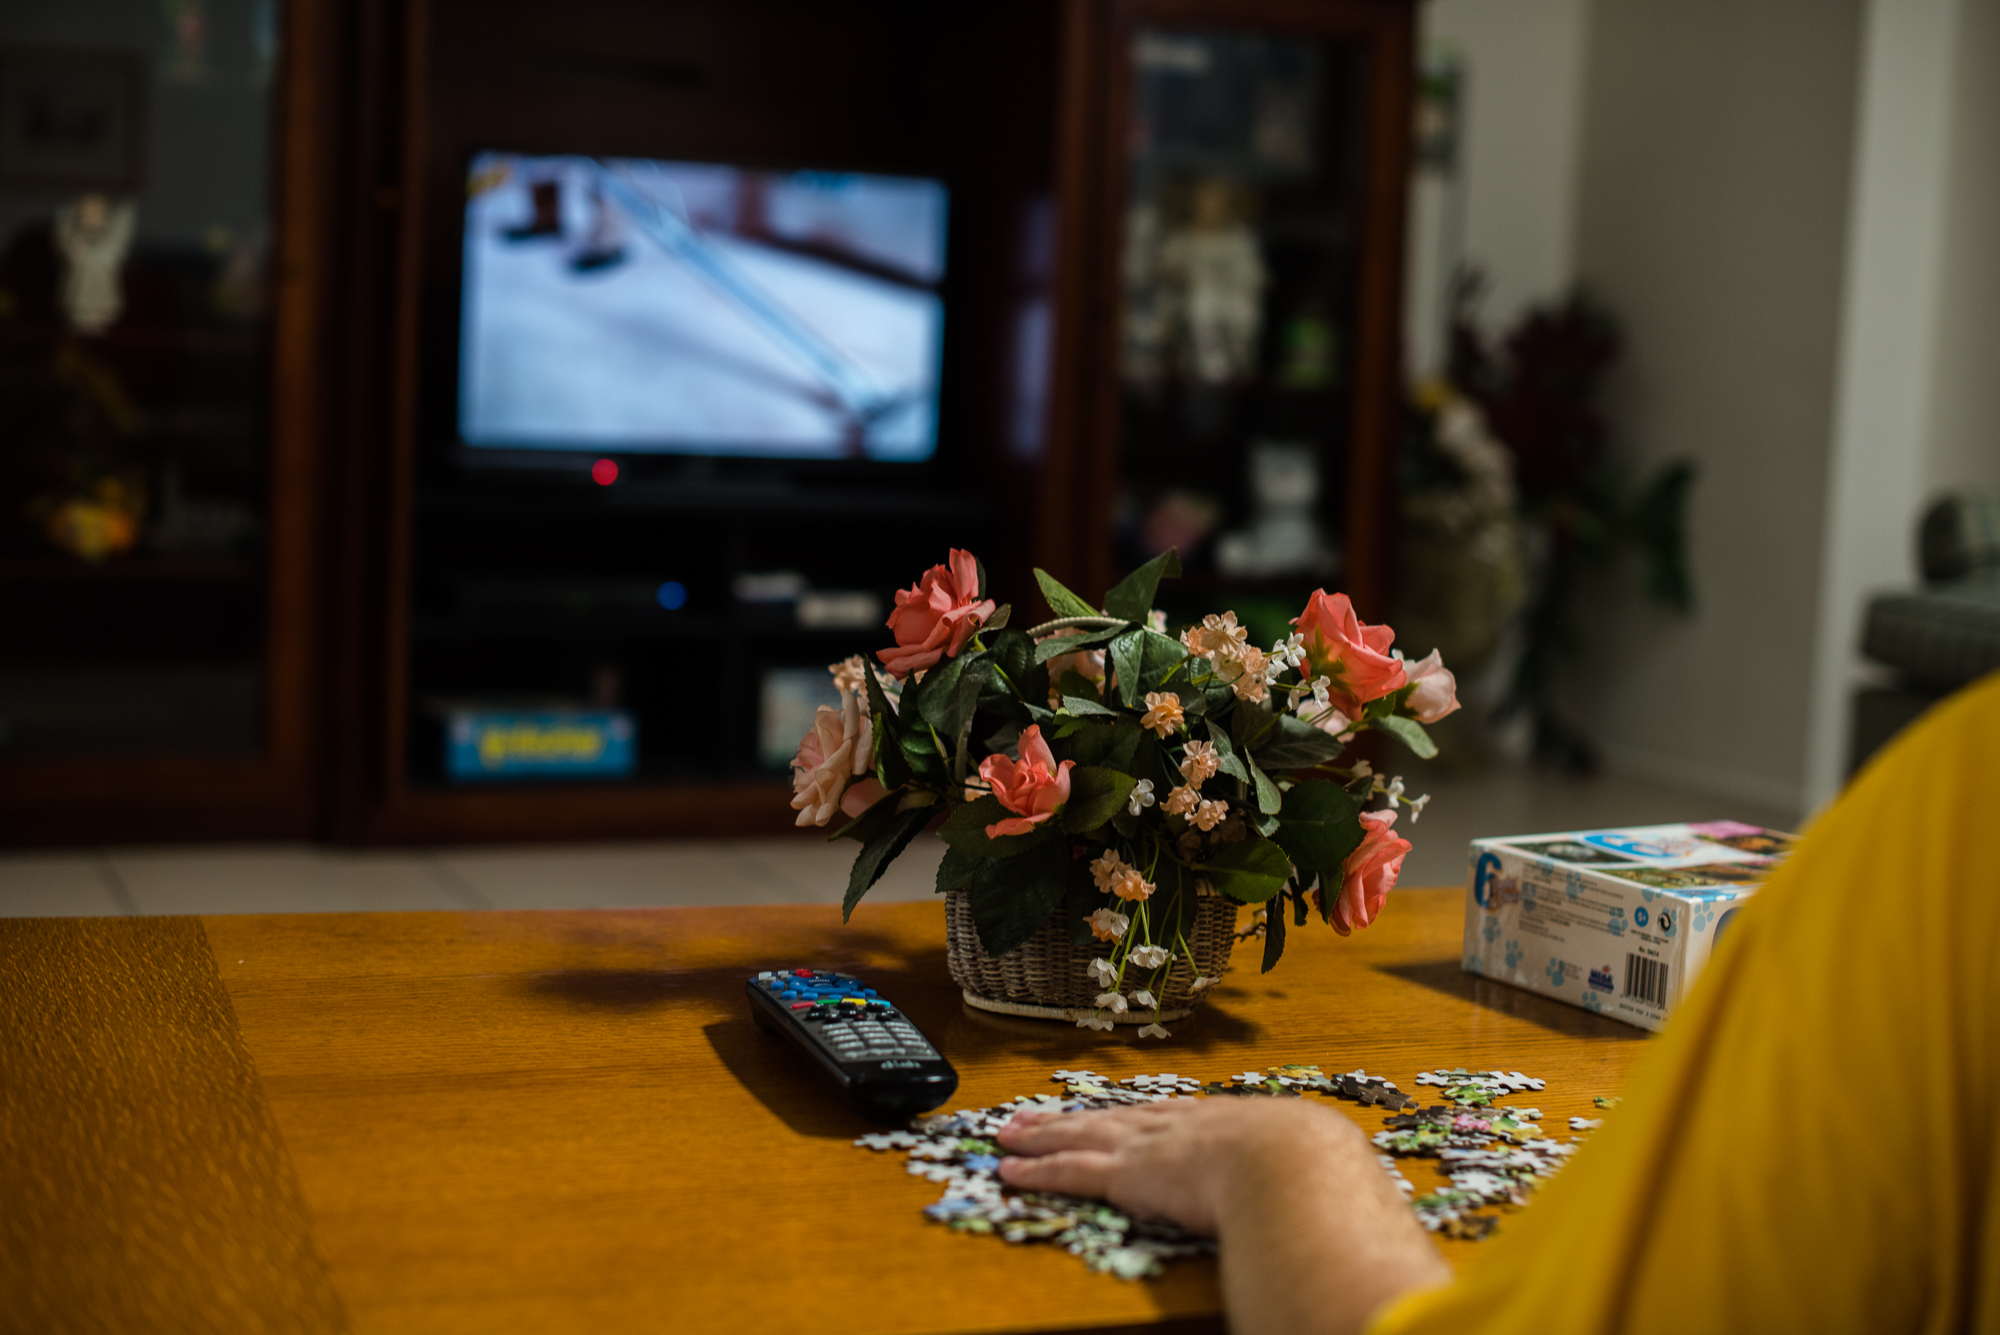 Nathaniel does a puzzle in front of the television inside the group home where Krysta lives.